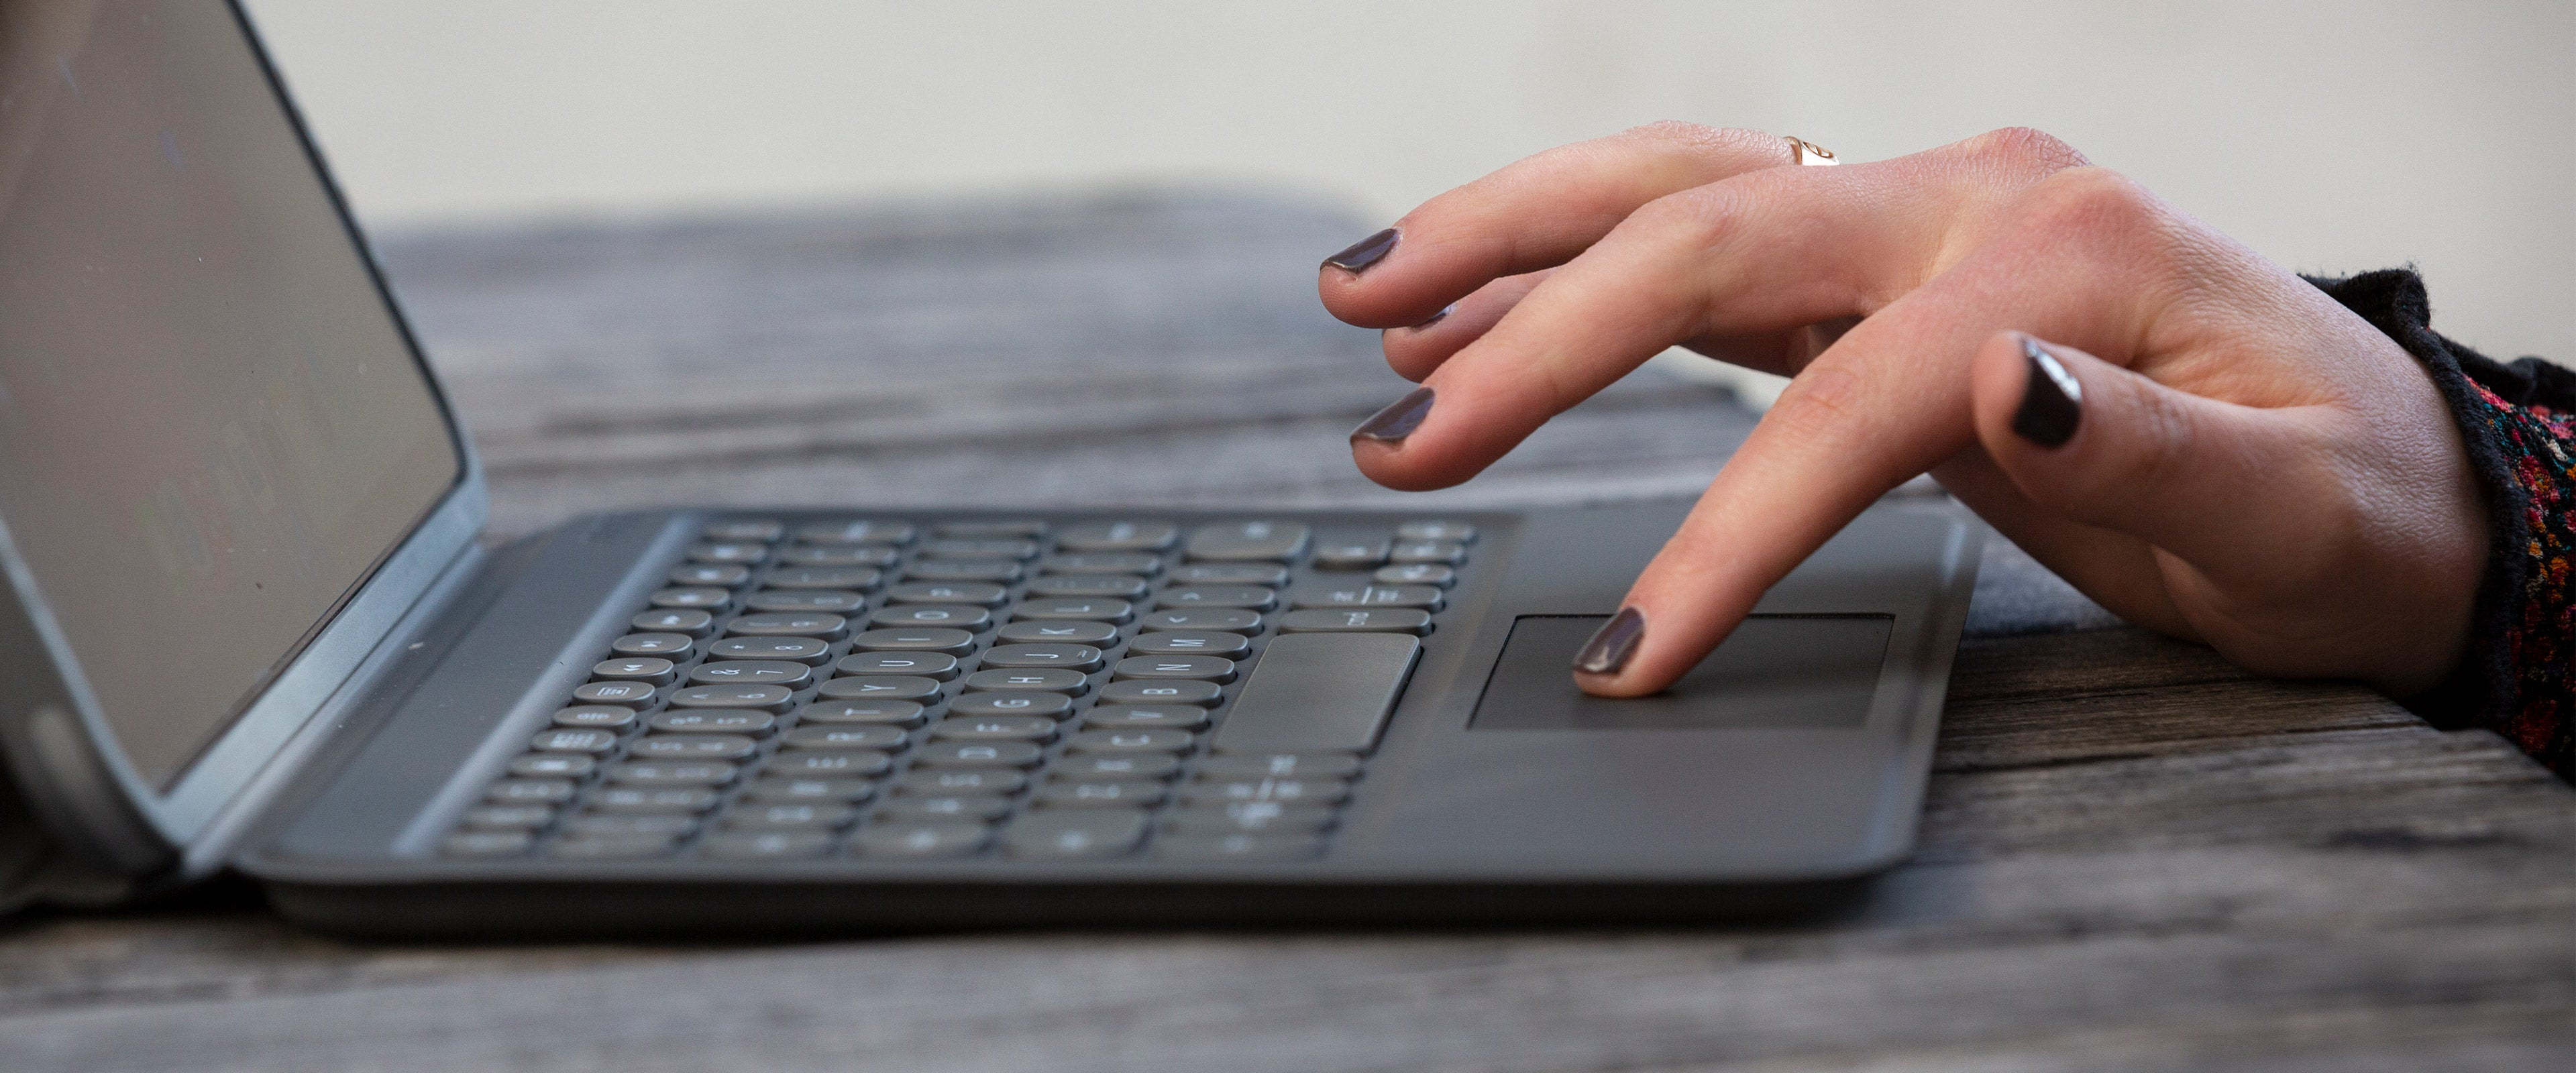 woman using pro keys with trackpad